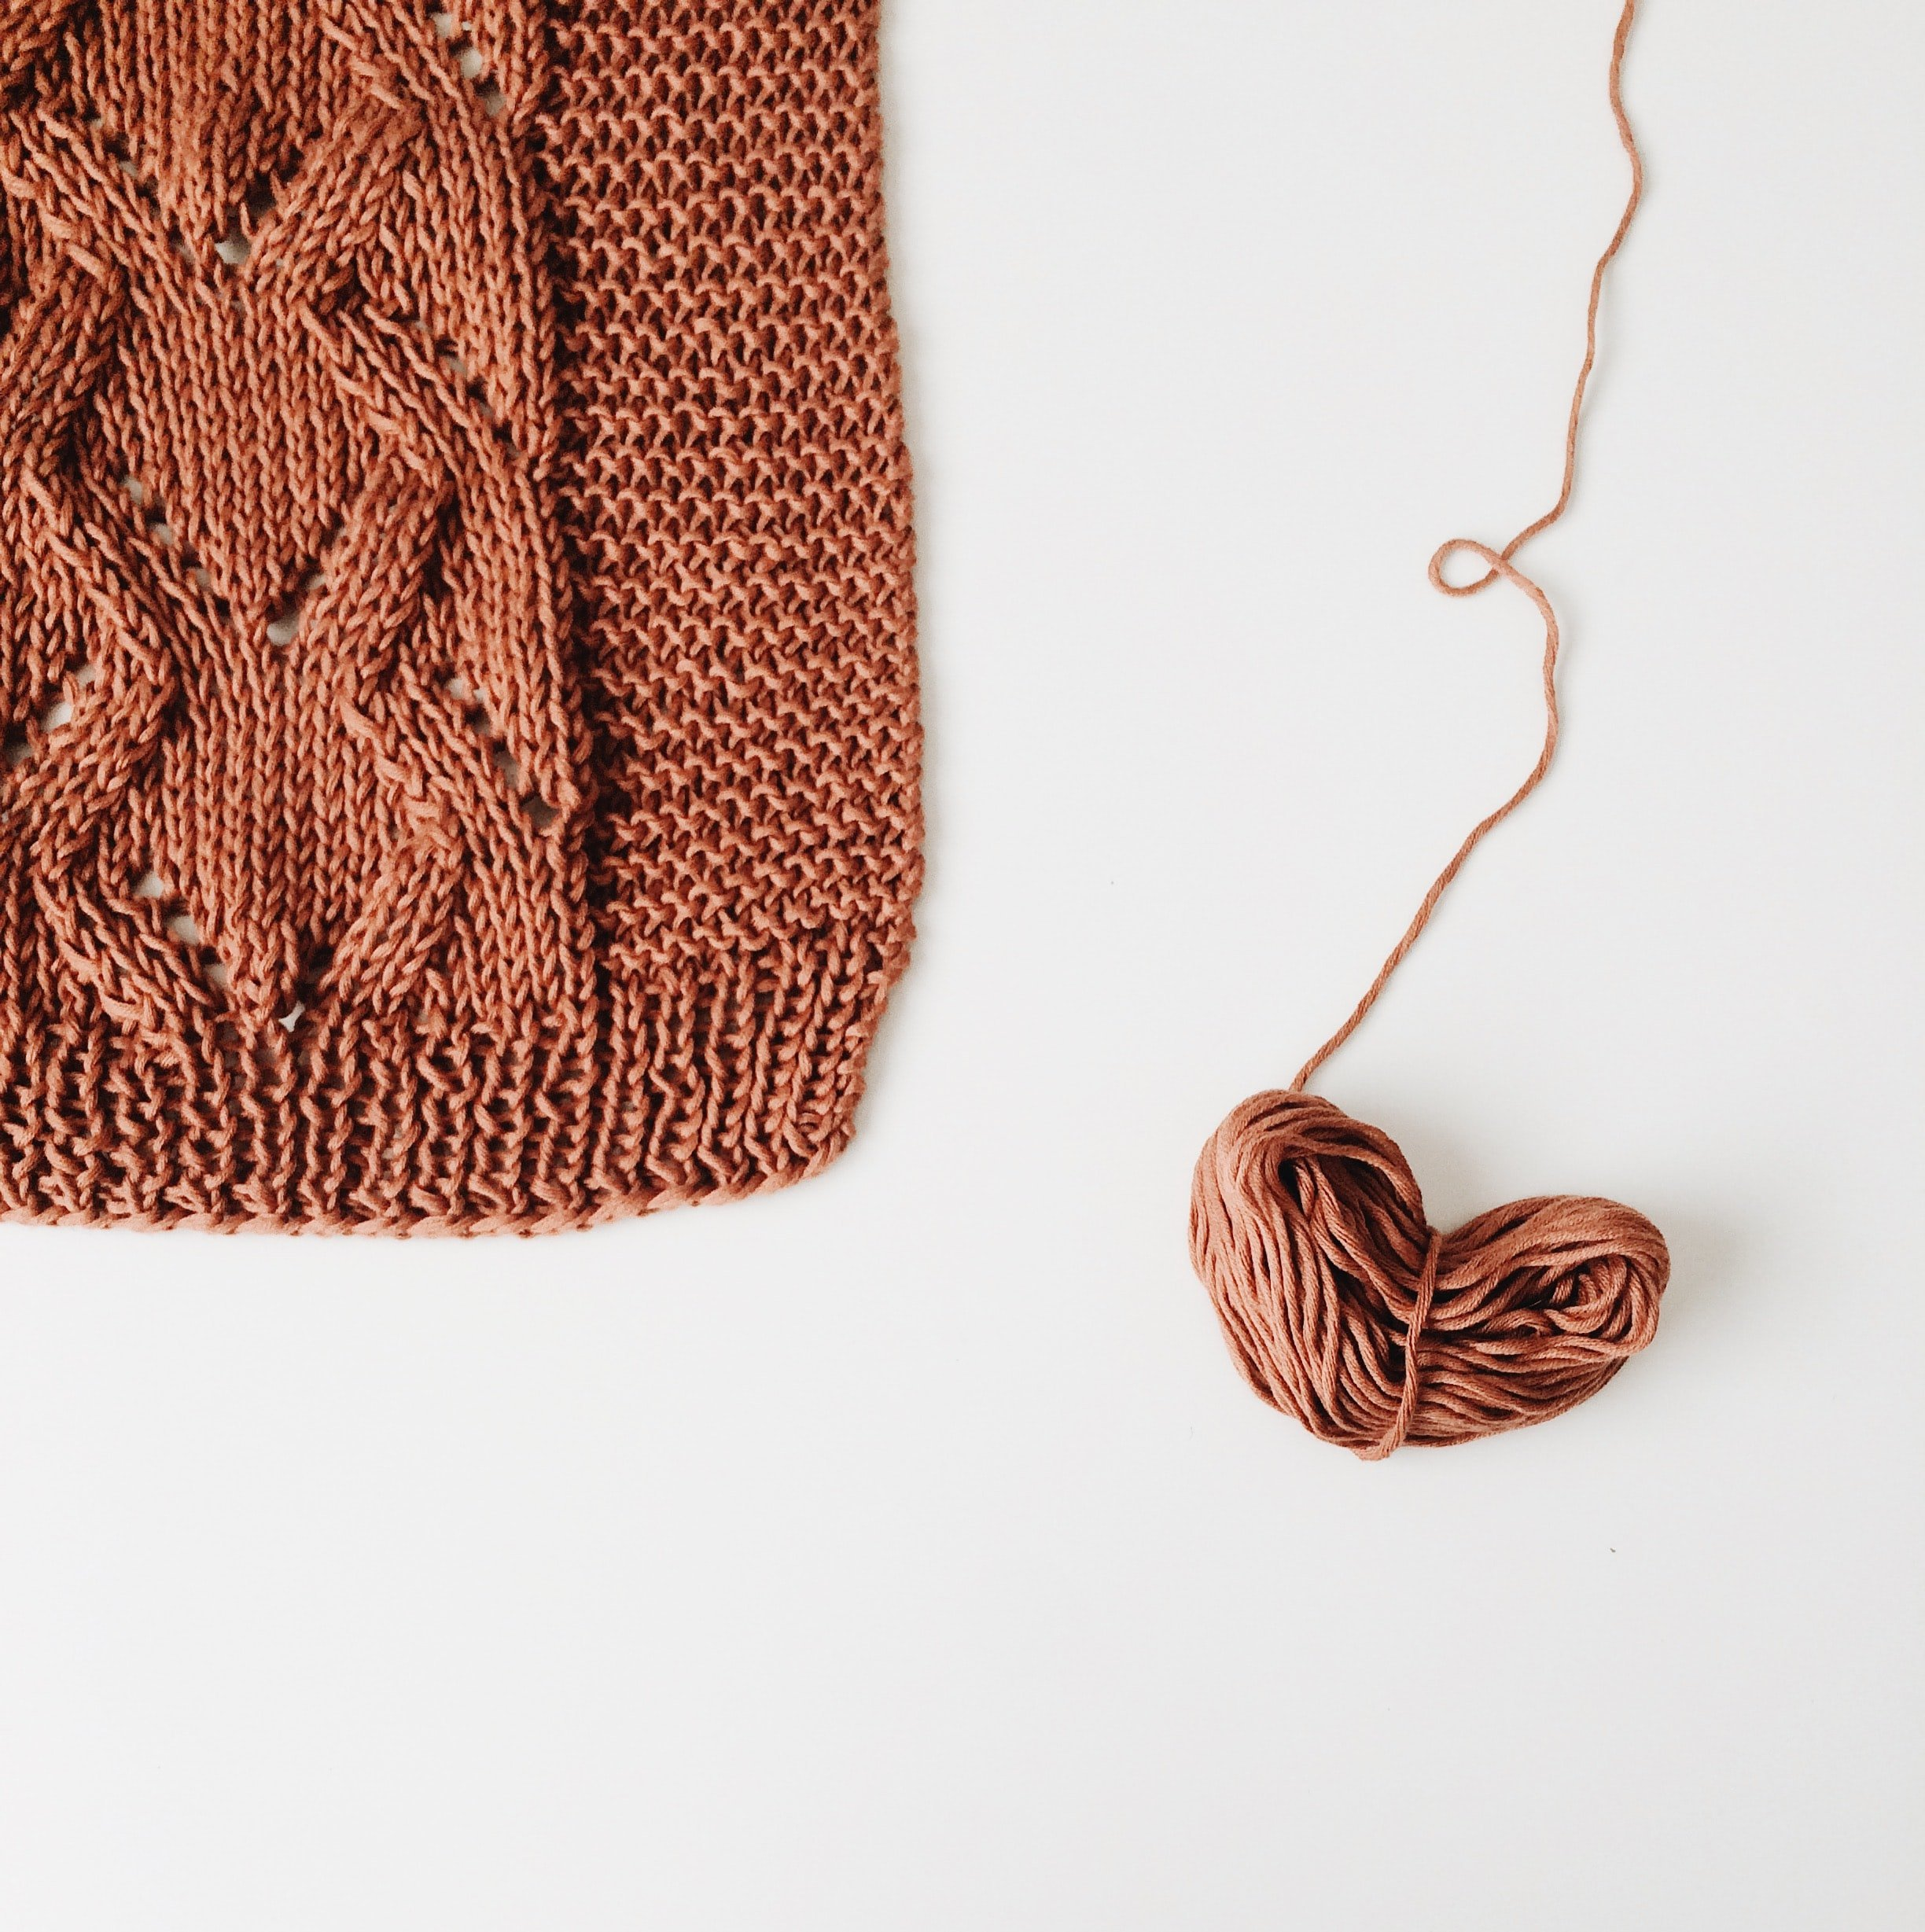 A ball of brown yarn and a portion of a brown knitted sweater | Source: Unsplash